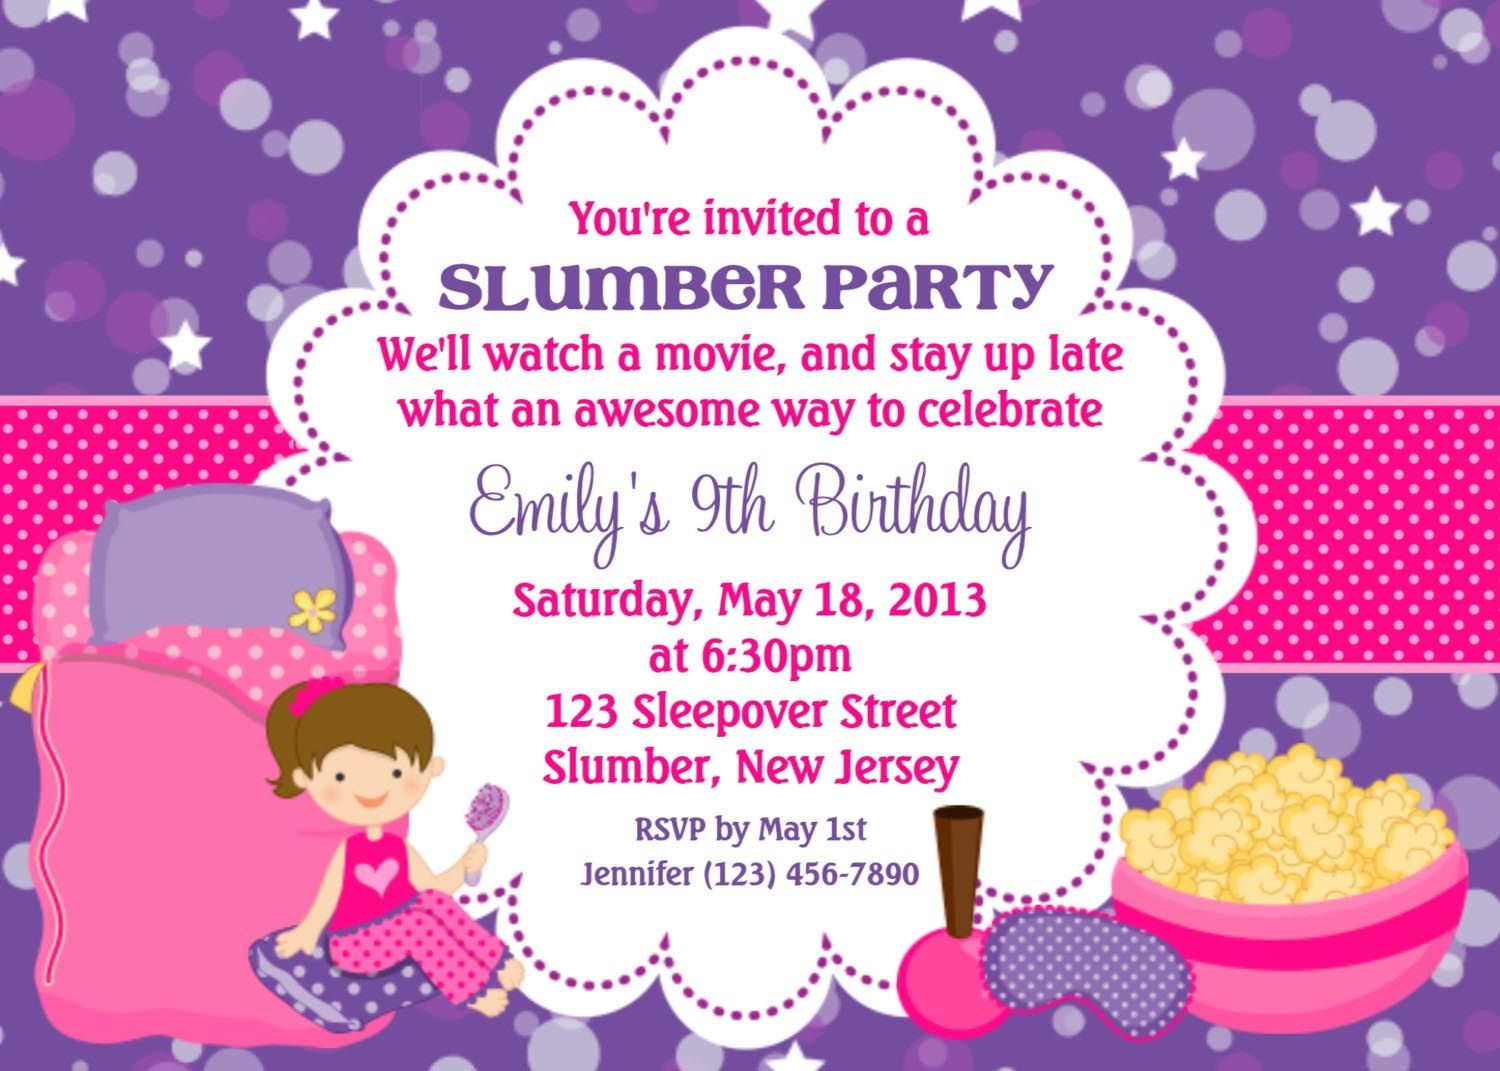 Spa party invitations templates free spa party pinterest spa sweet purple card background style birthday party invitation wording with popcorn images card pattern 23 best pictures from birthday party invitation filmwisefo Images